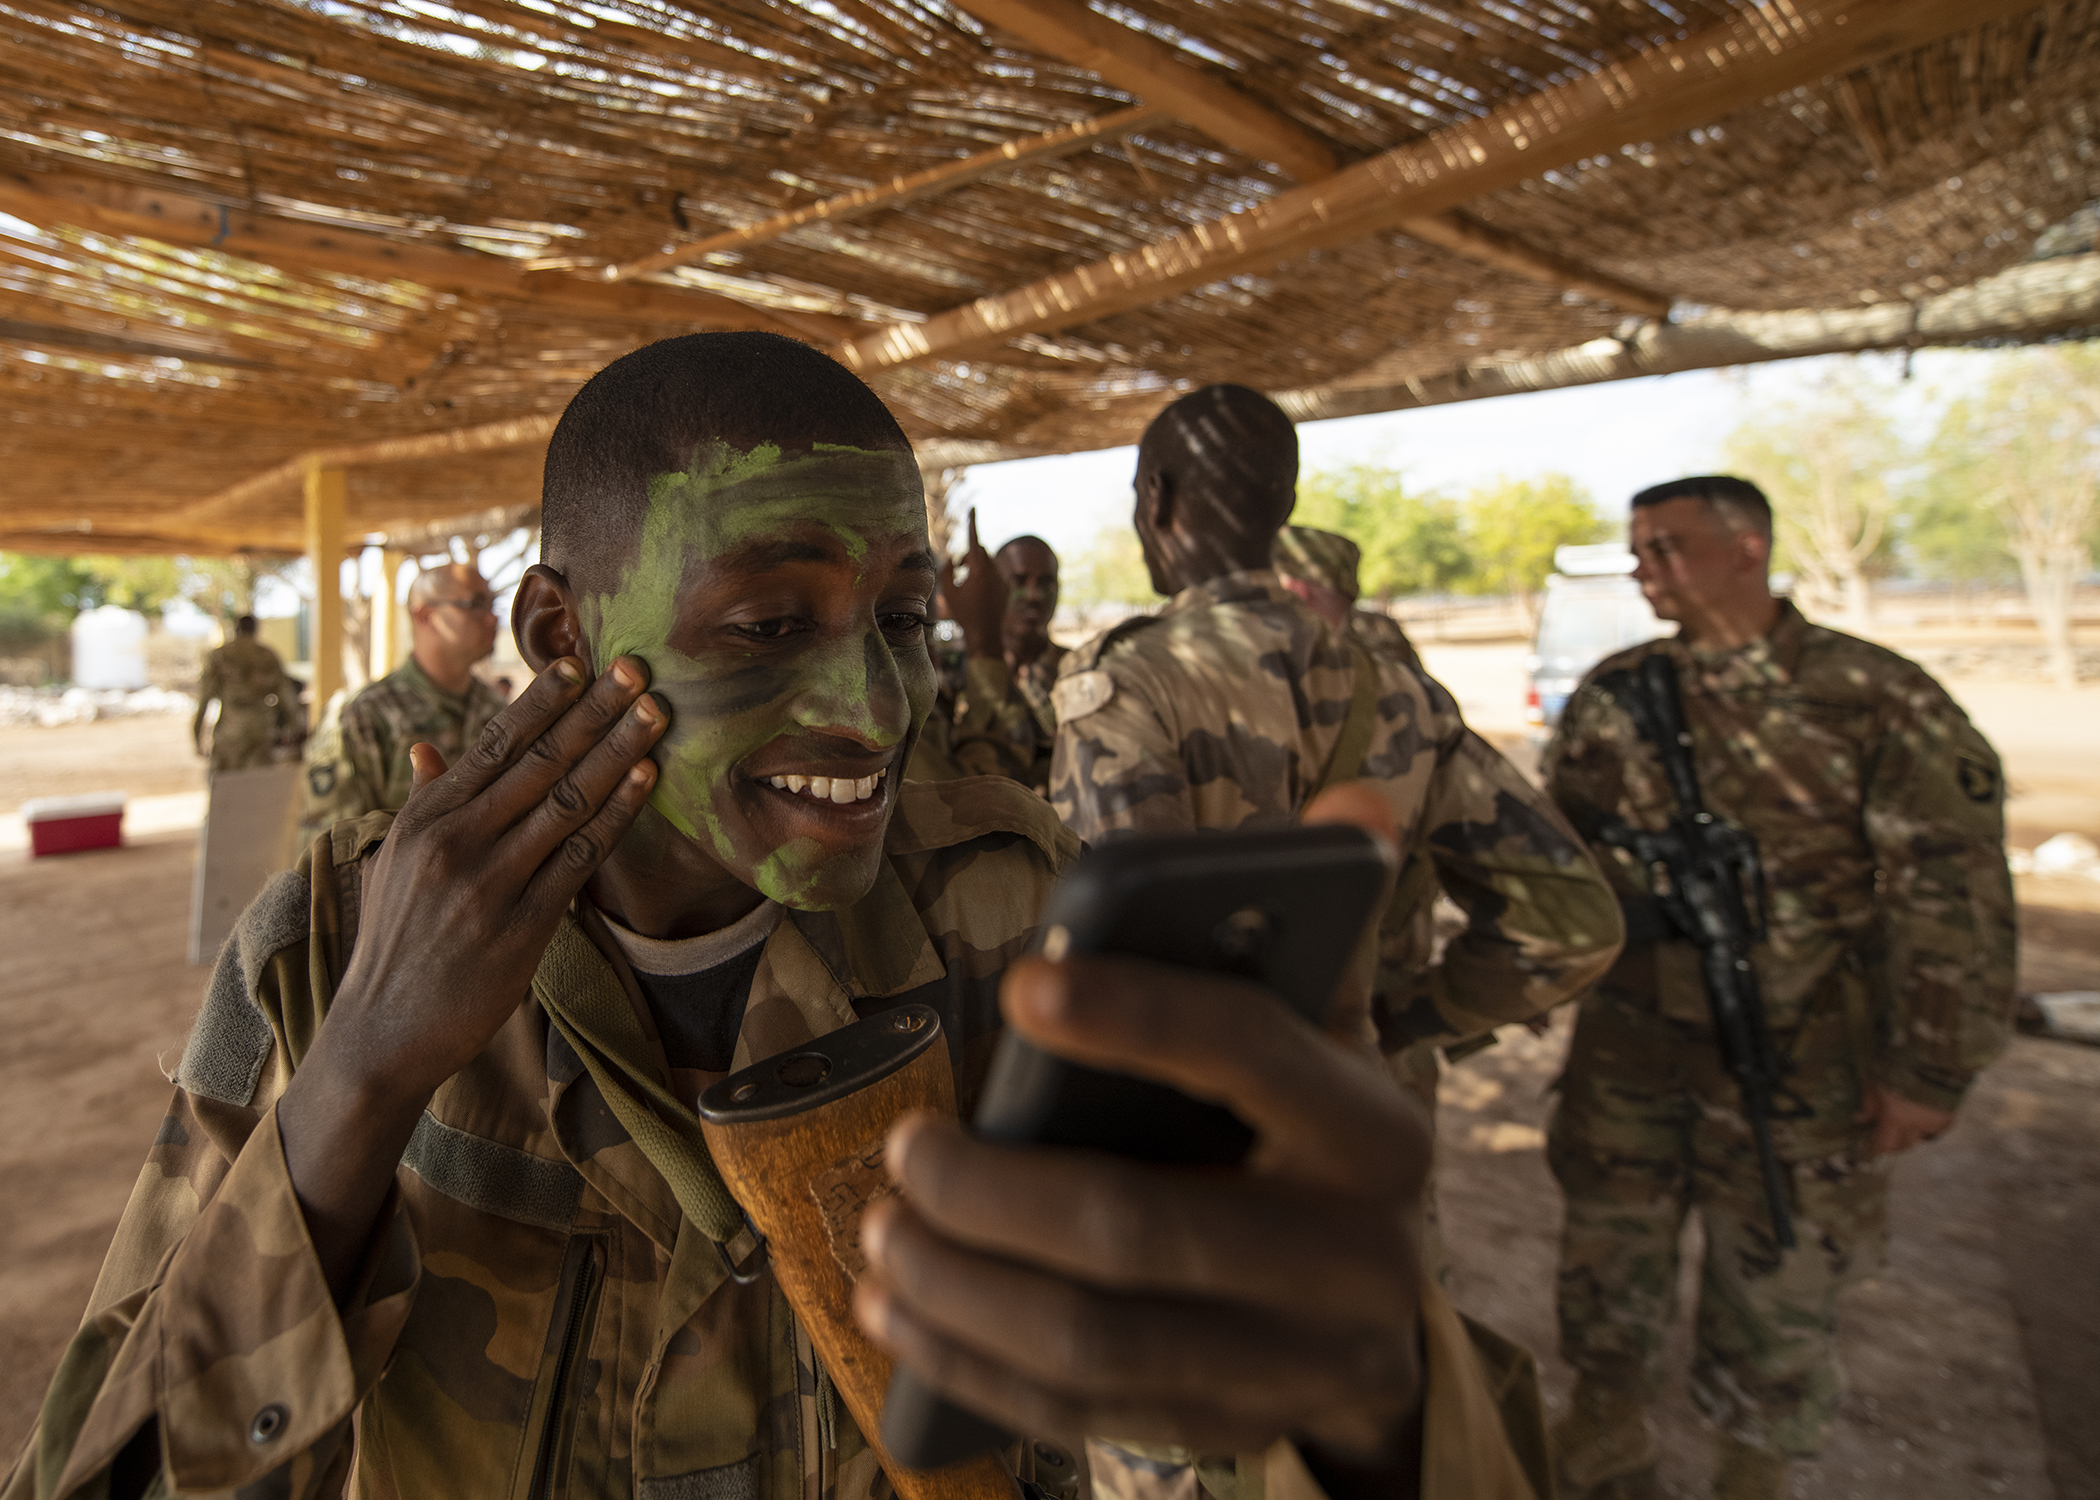 A soldier assigned to the Rapid Intervention Battalion (RIB), the Djiboutian army's elite military force, prepares for a visit from U.S. Marine Corps Gen. Thomas D. Waldhauser, commander of U.S. Africa Command, and Chief of General Staff of the Djibouti Armed Forces Gen. Zakaria Cheik Ibrahim, during the officials' visit at a training base in Djibouti, March 21, 2019. Waldhauser and Zakaria visited in order to discuss the growth and development of Djiboutian security forces. (U.S. Air Force photo by Tech. Sgt. Shawn Nickel